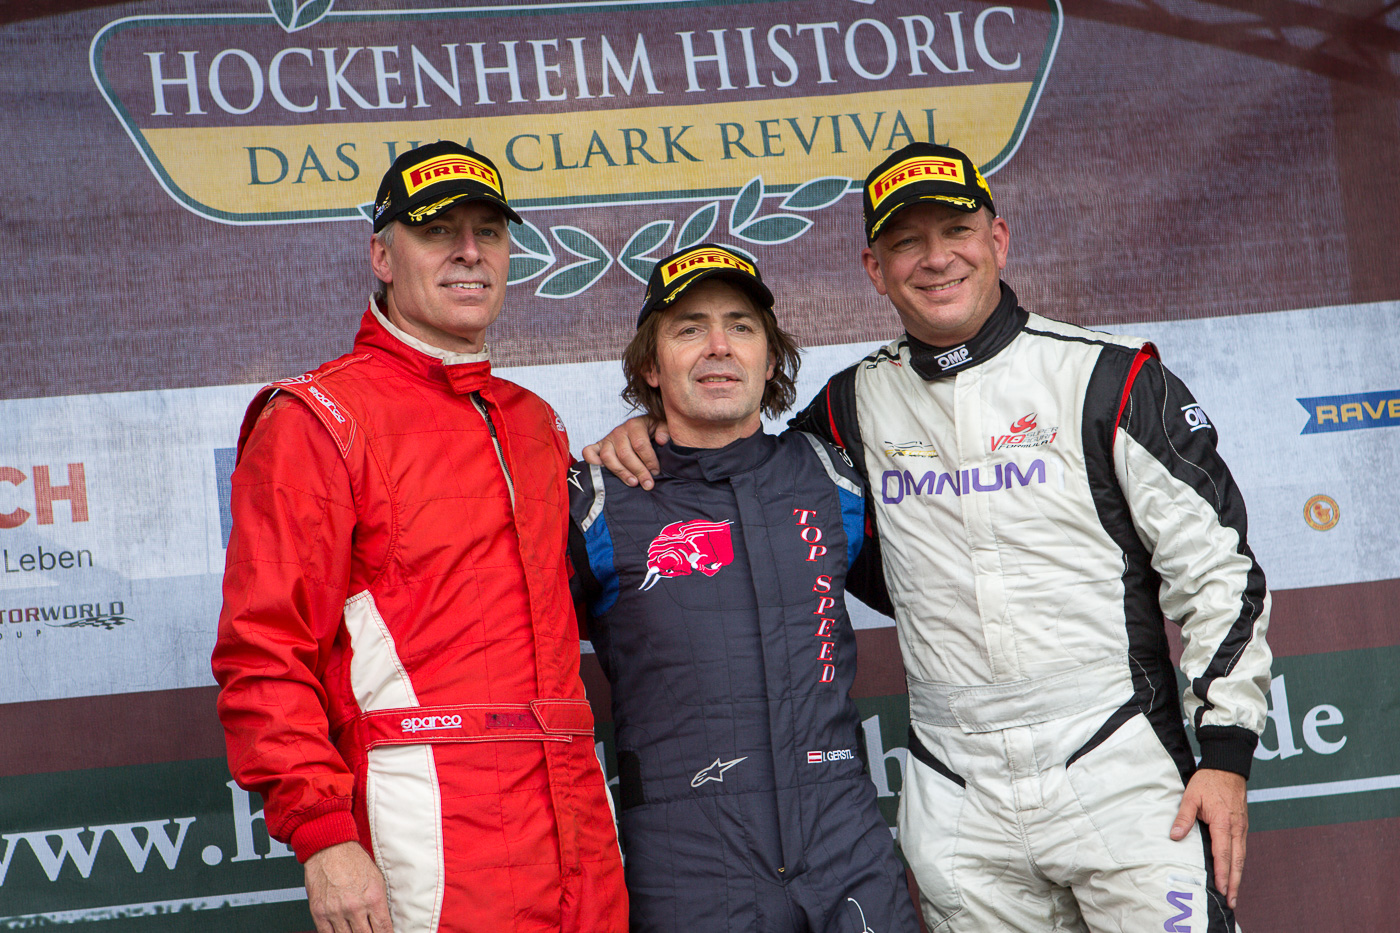 Podium of race 2 of the OPEN class in Hockenheim.